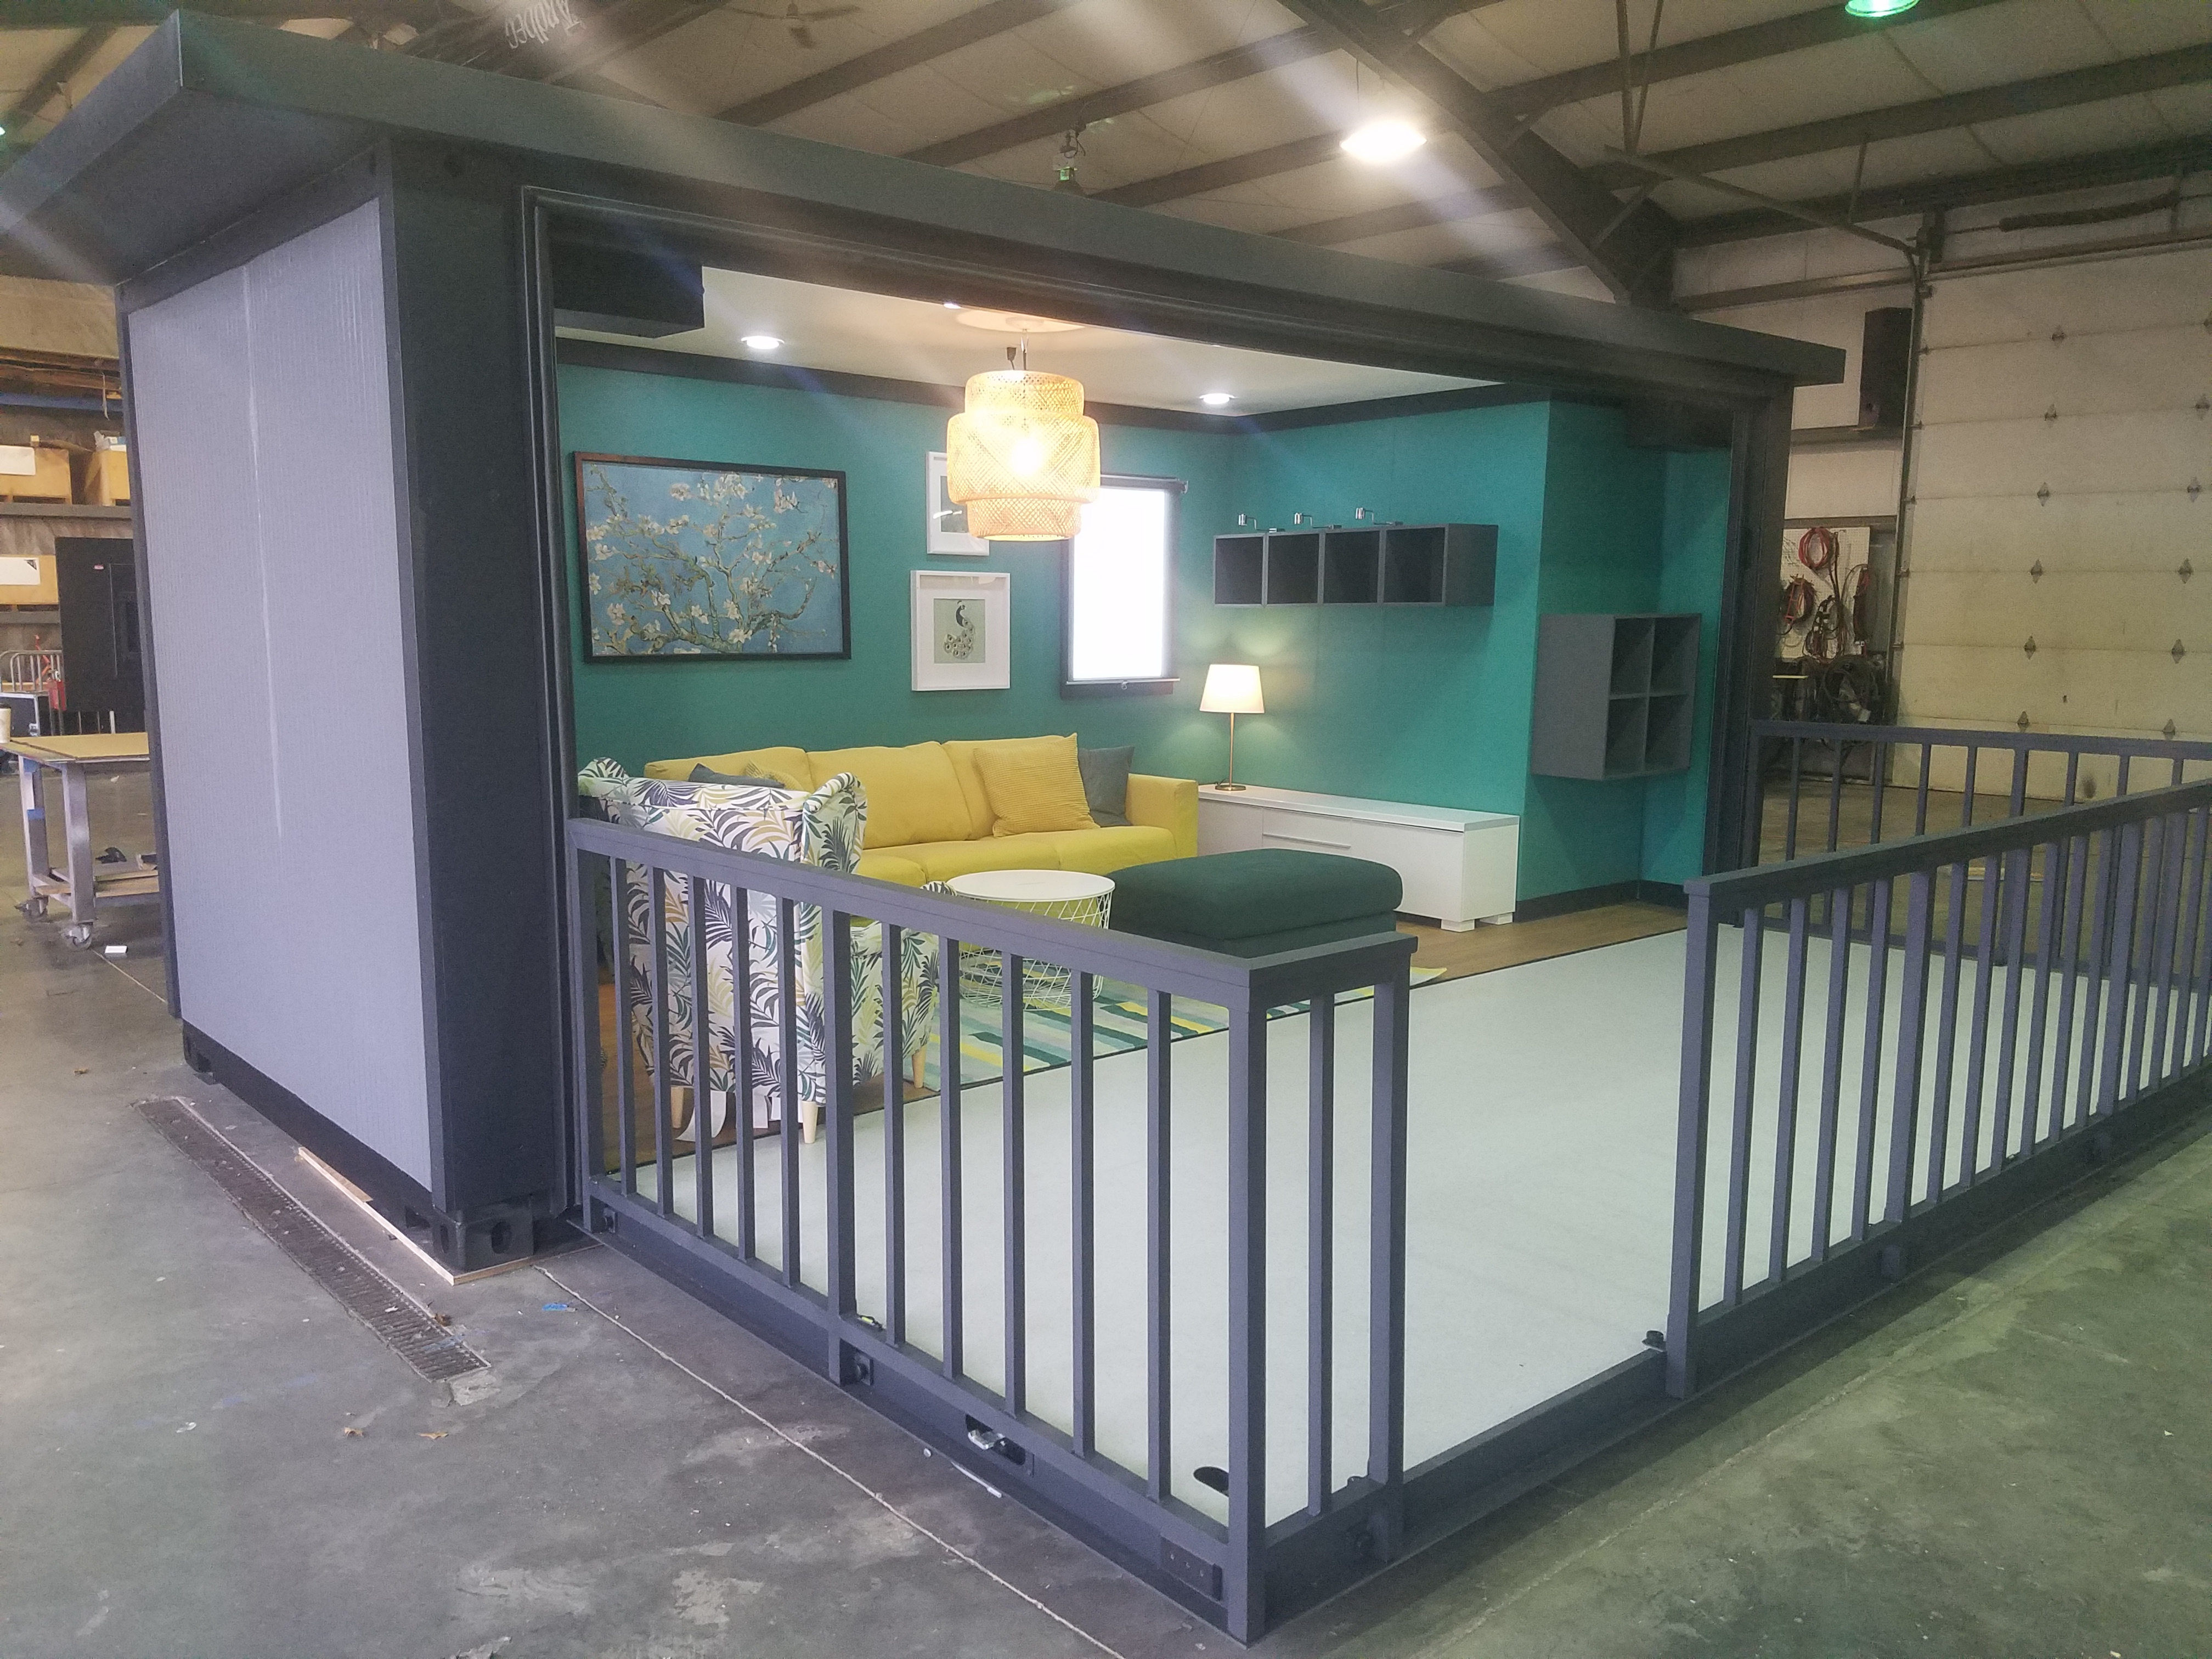 Event Shipping container rental